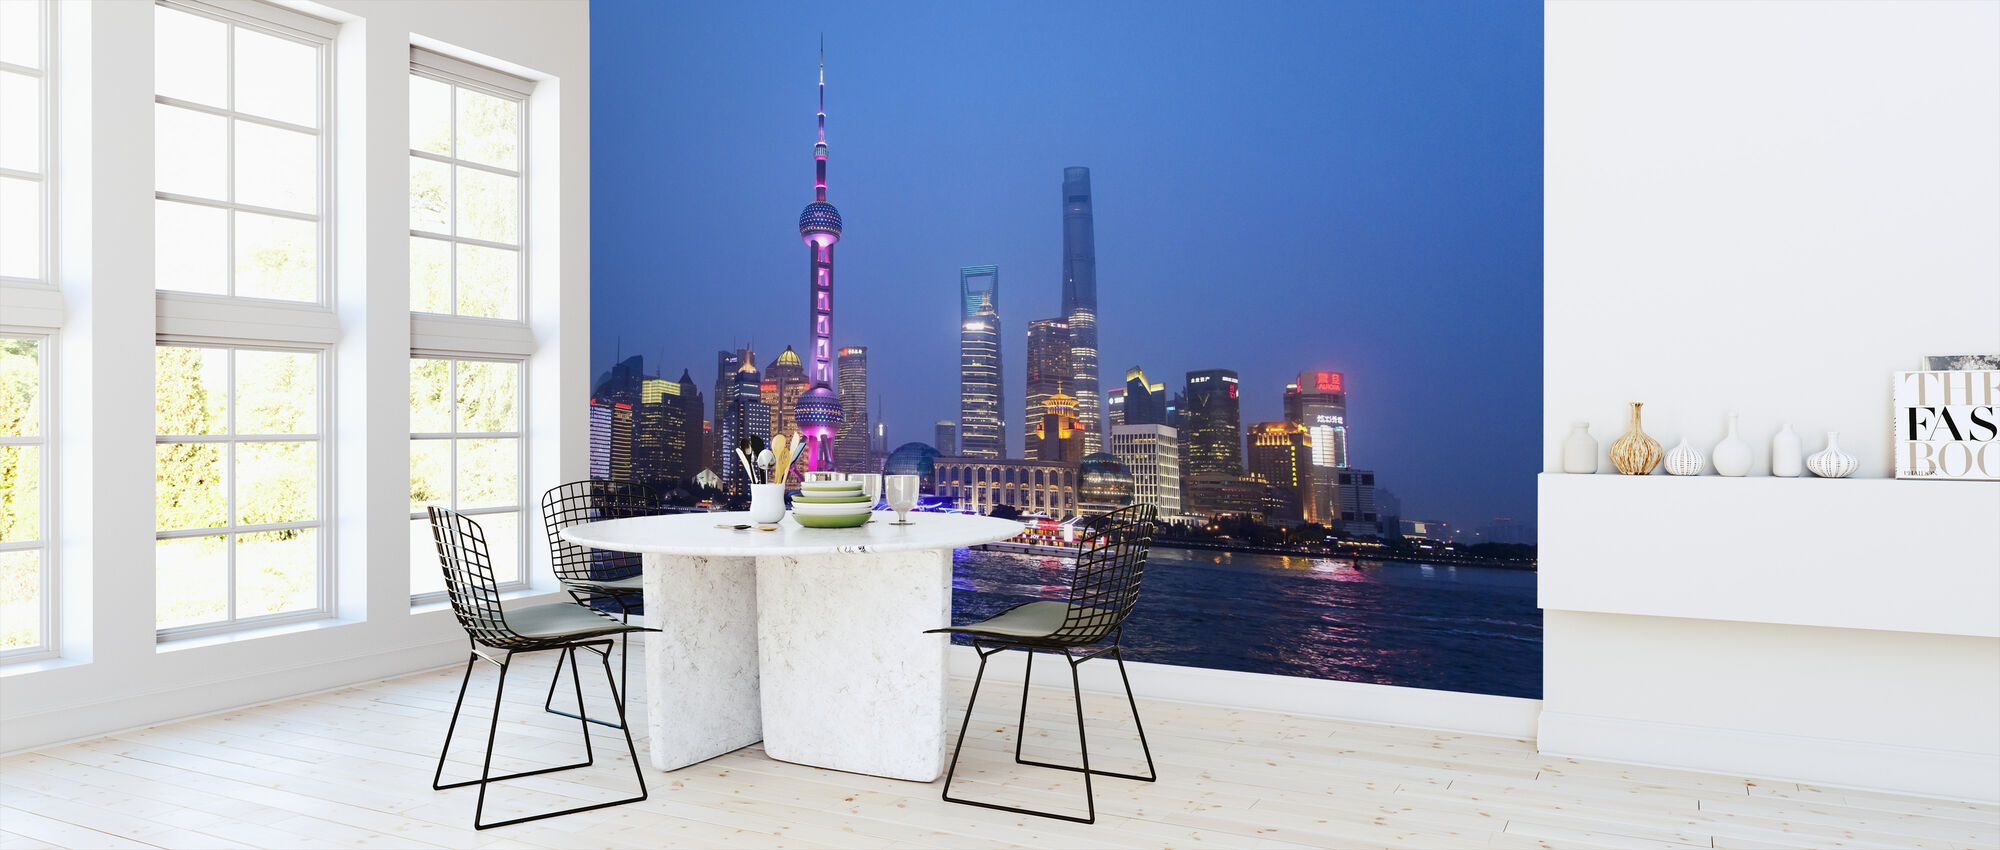 Night View of Shanghai City - Wallpaper - Kitchen